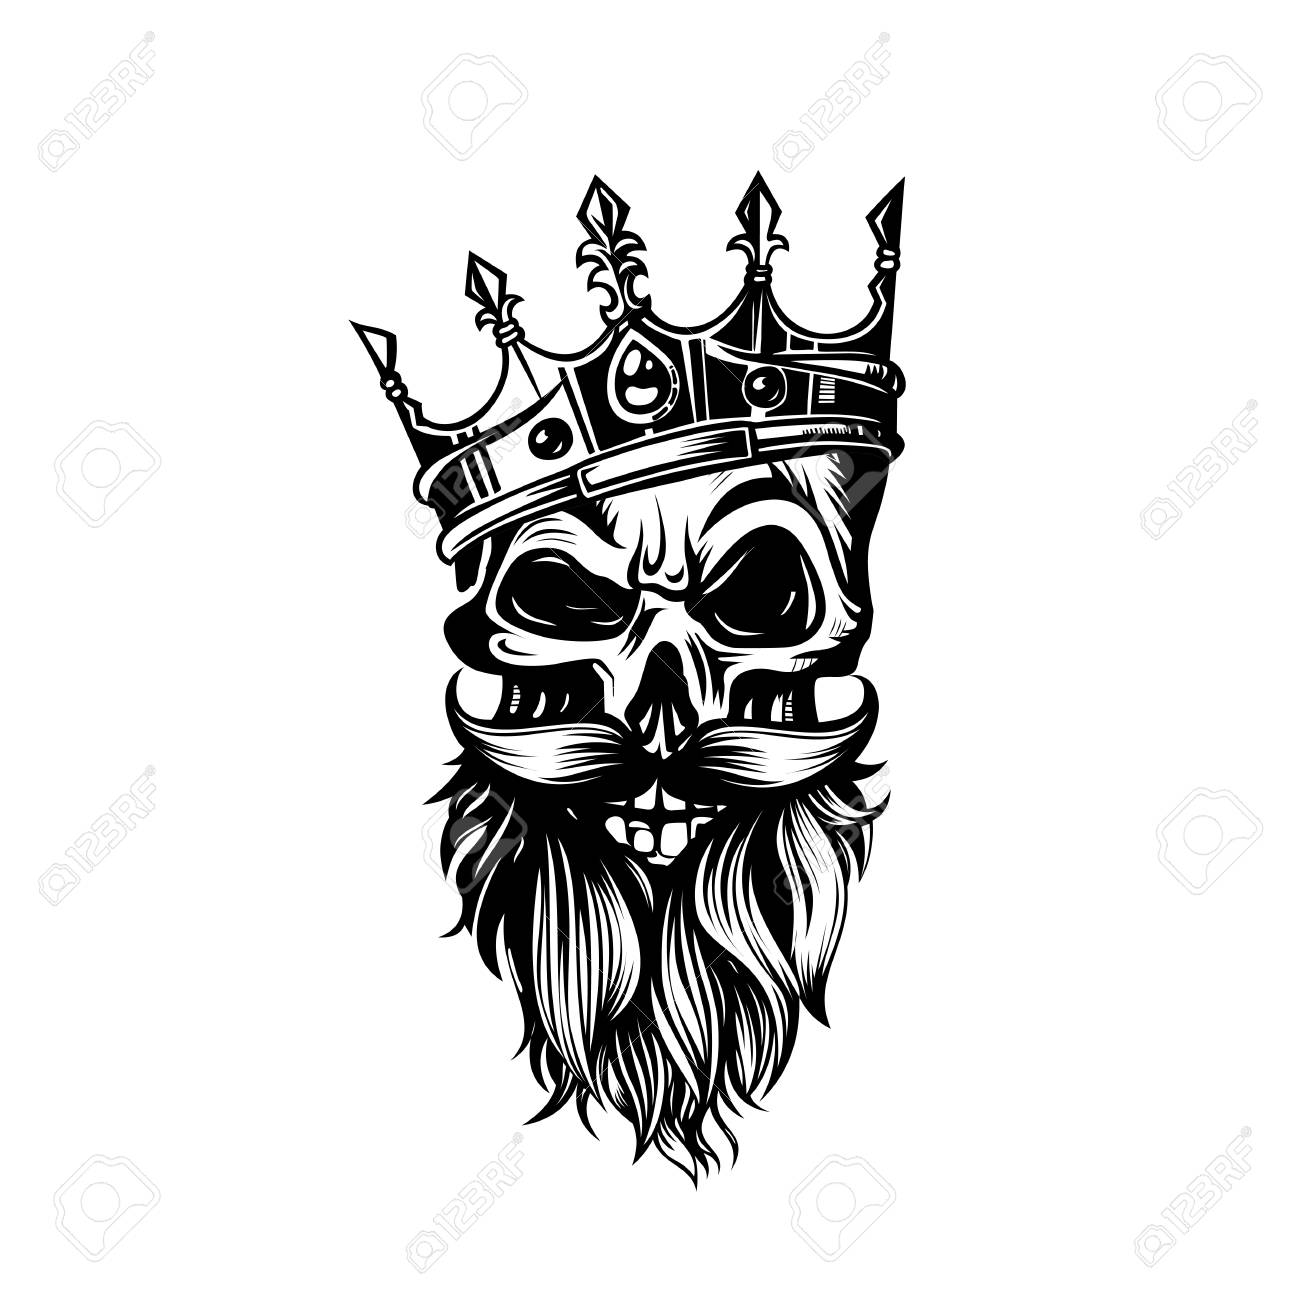 Black And White Skull In Crown With Beard Vector Illustration Stock